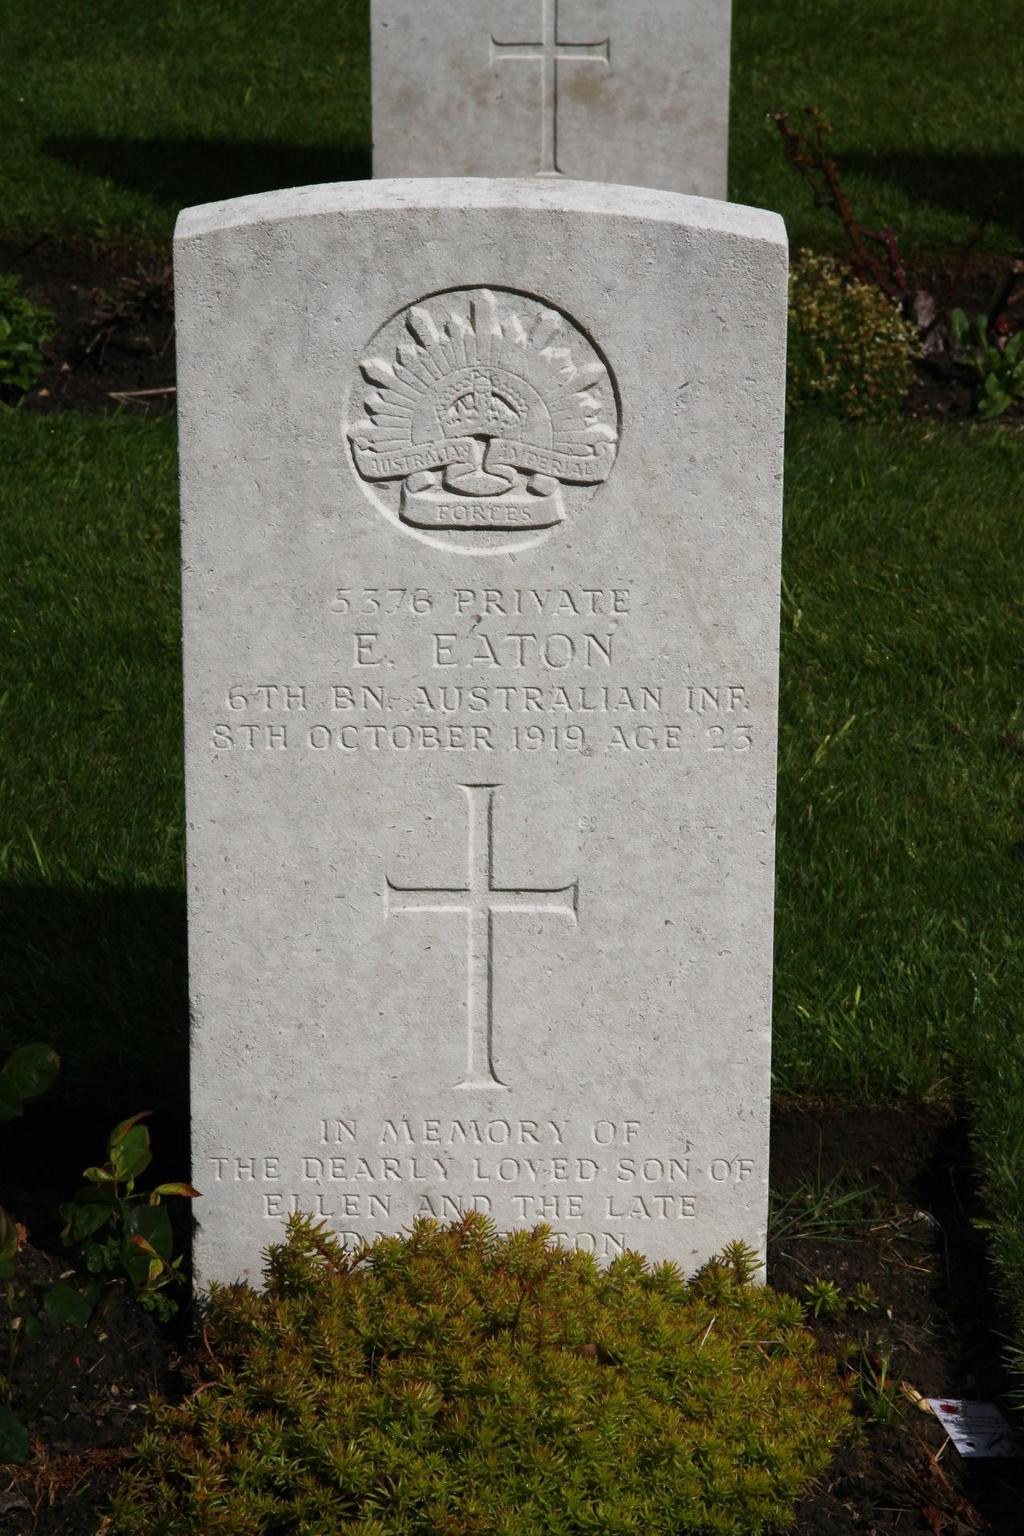 Photo of Pte E. Eaton s Headstone in St.